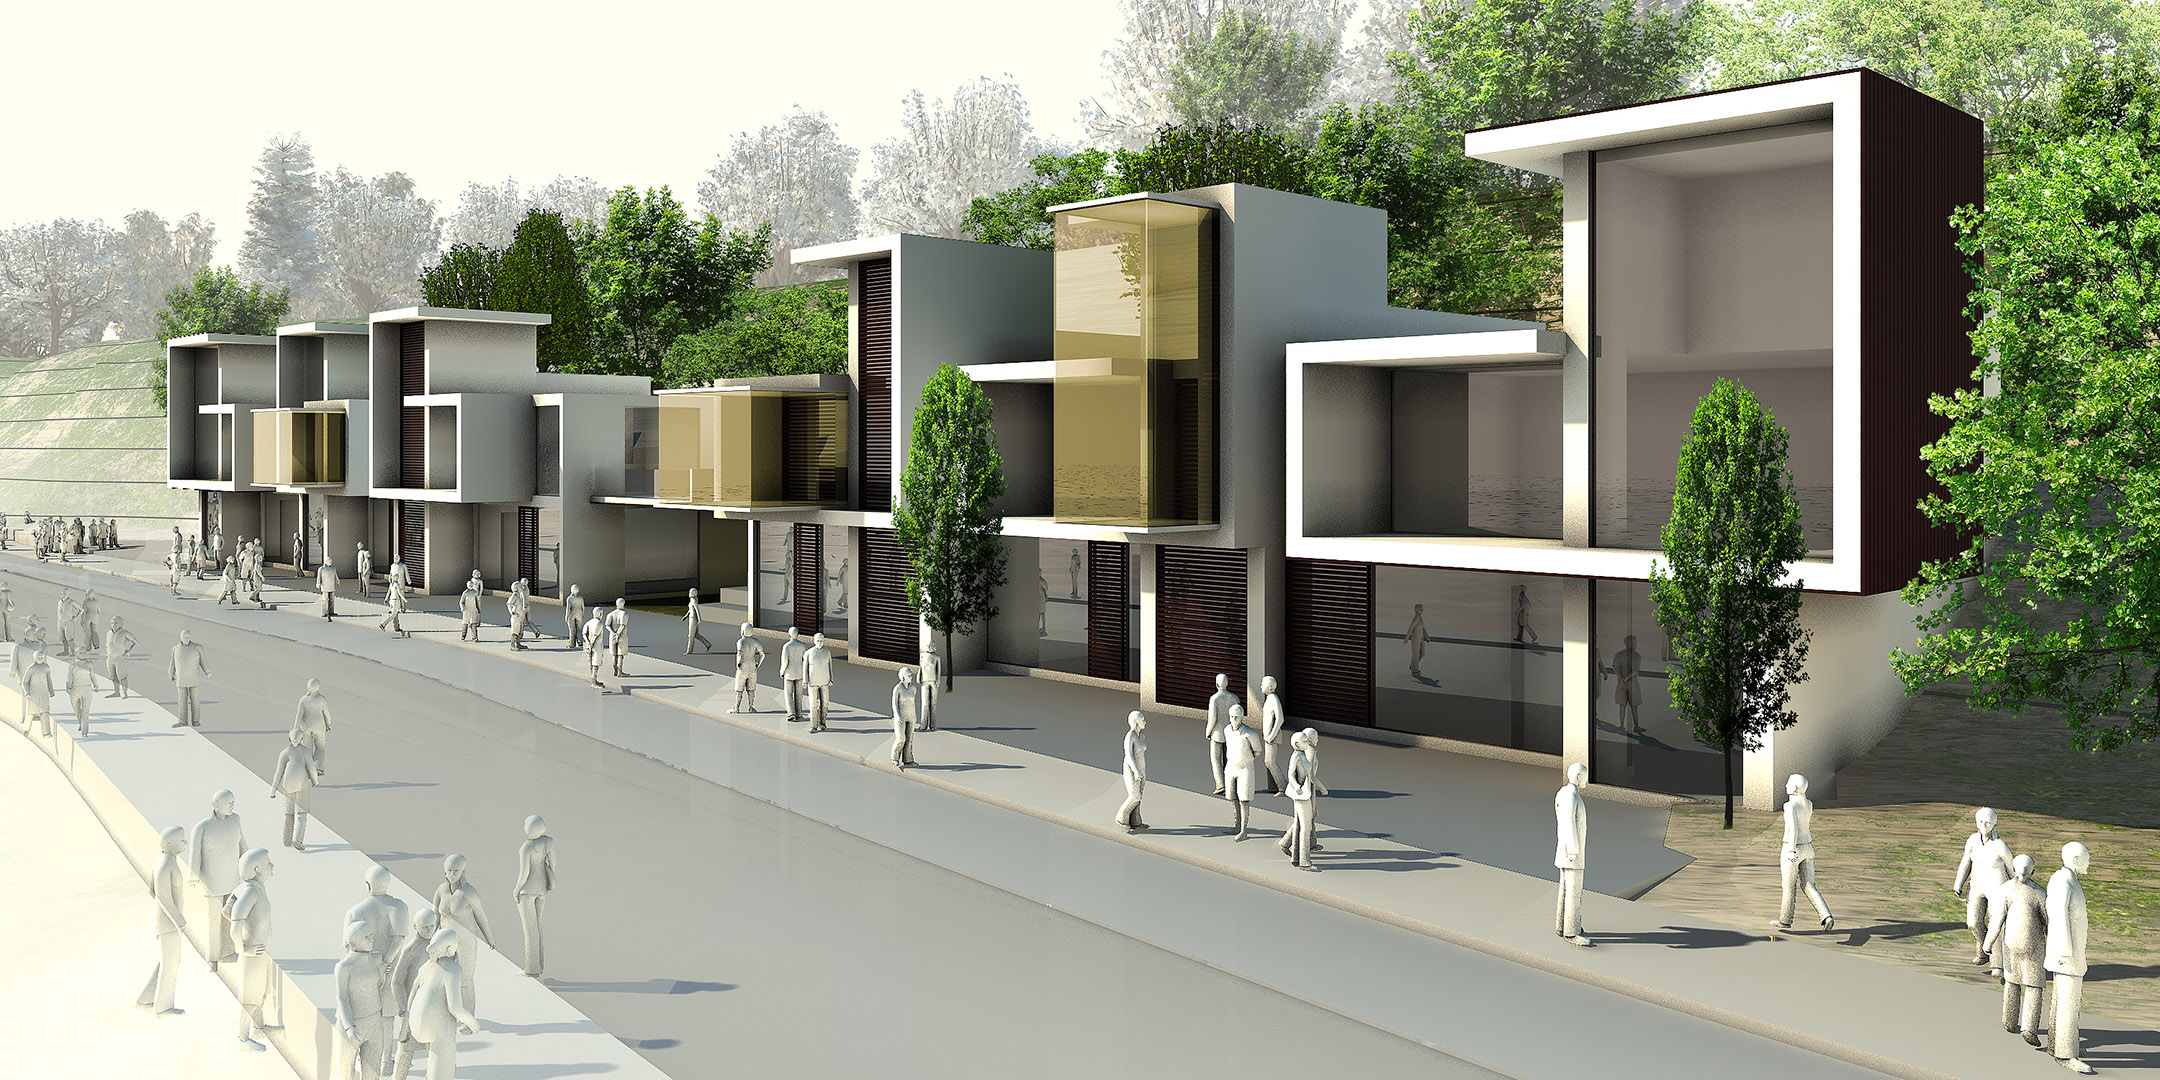 Architecture project Varna